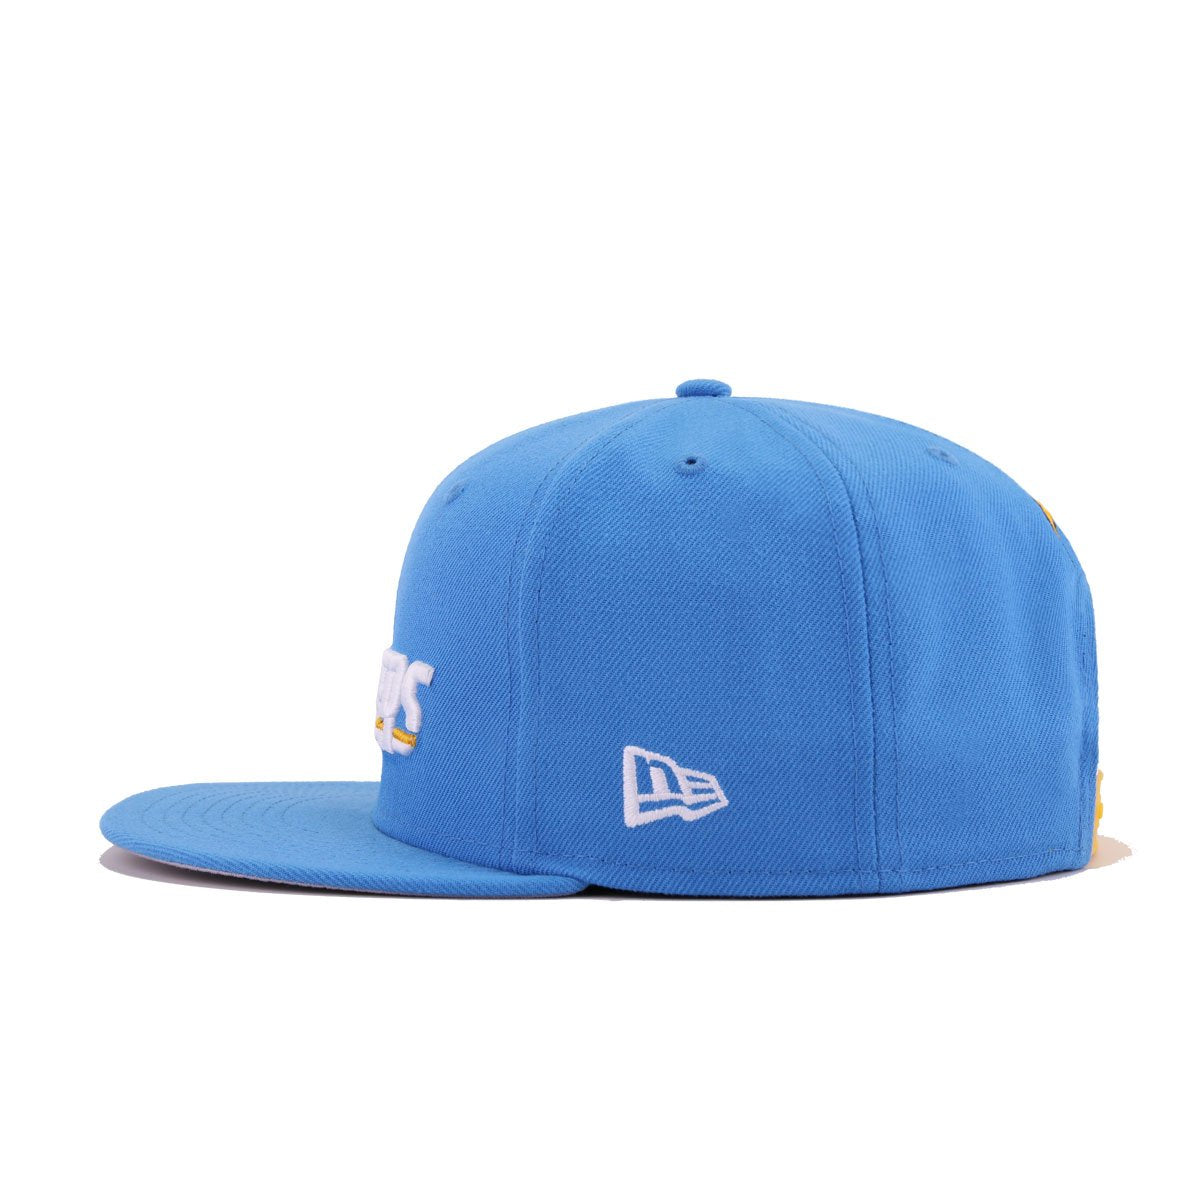 Los Angeles Chargers Blue Reef New Era 9Fifty Snapback